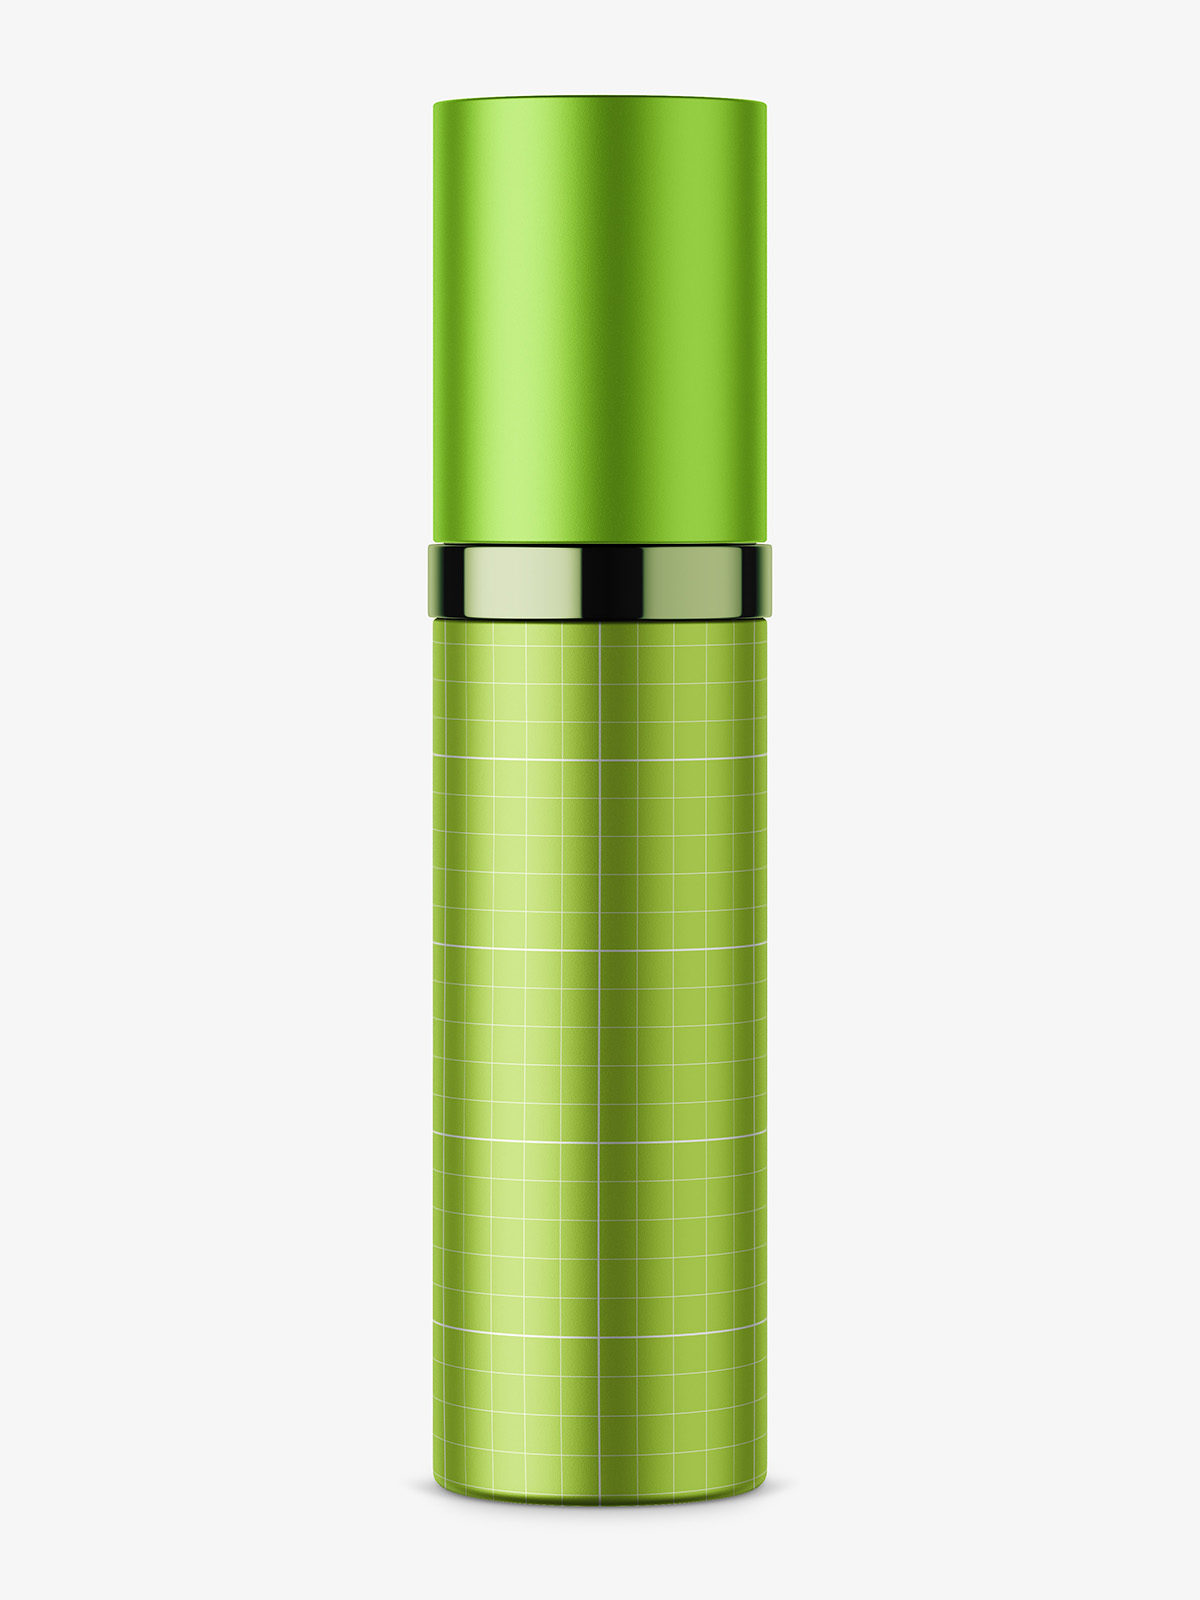 Metallic atomizer bottle mockup